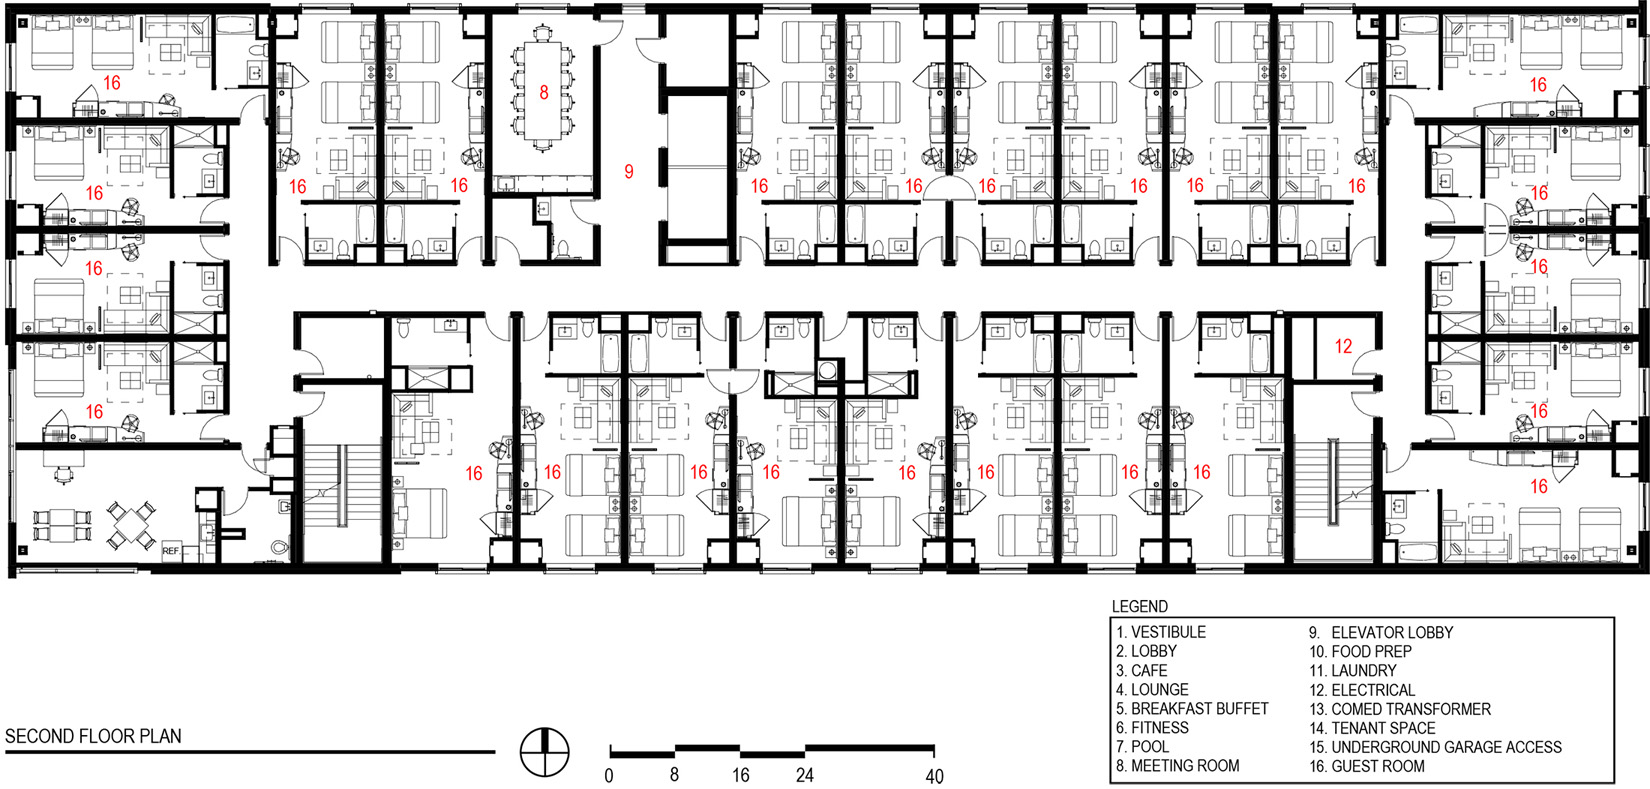 Design excellence awards american institute of architects for 02 floor plan